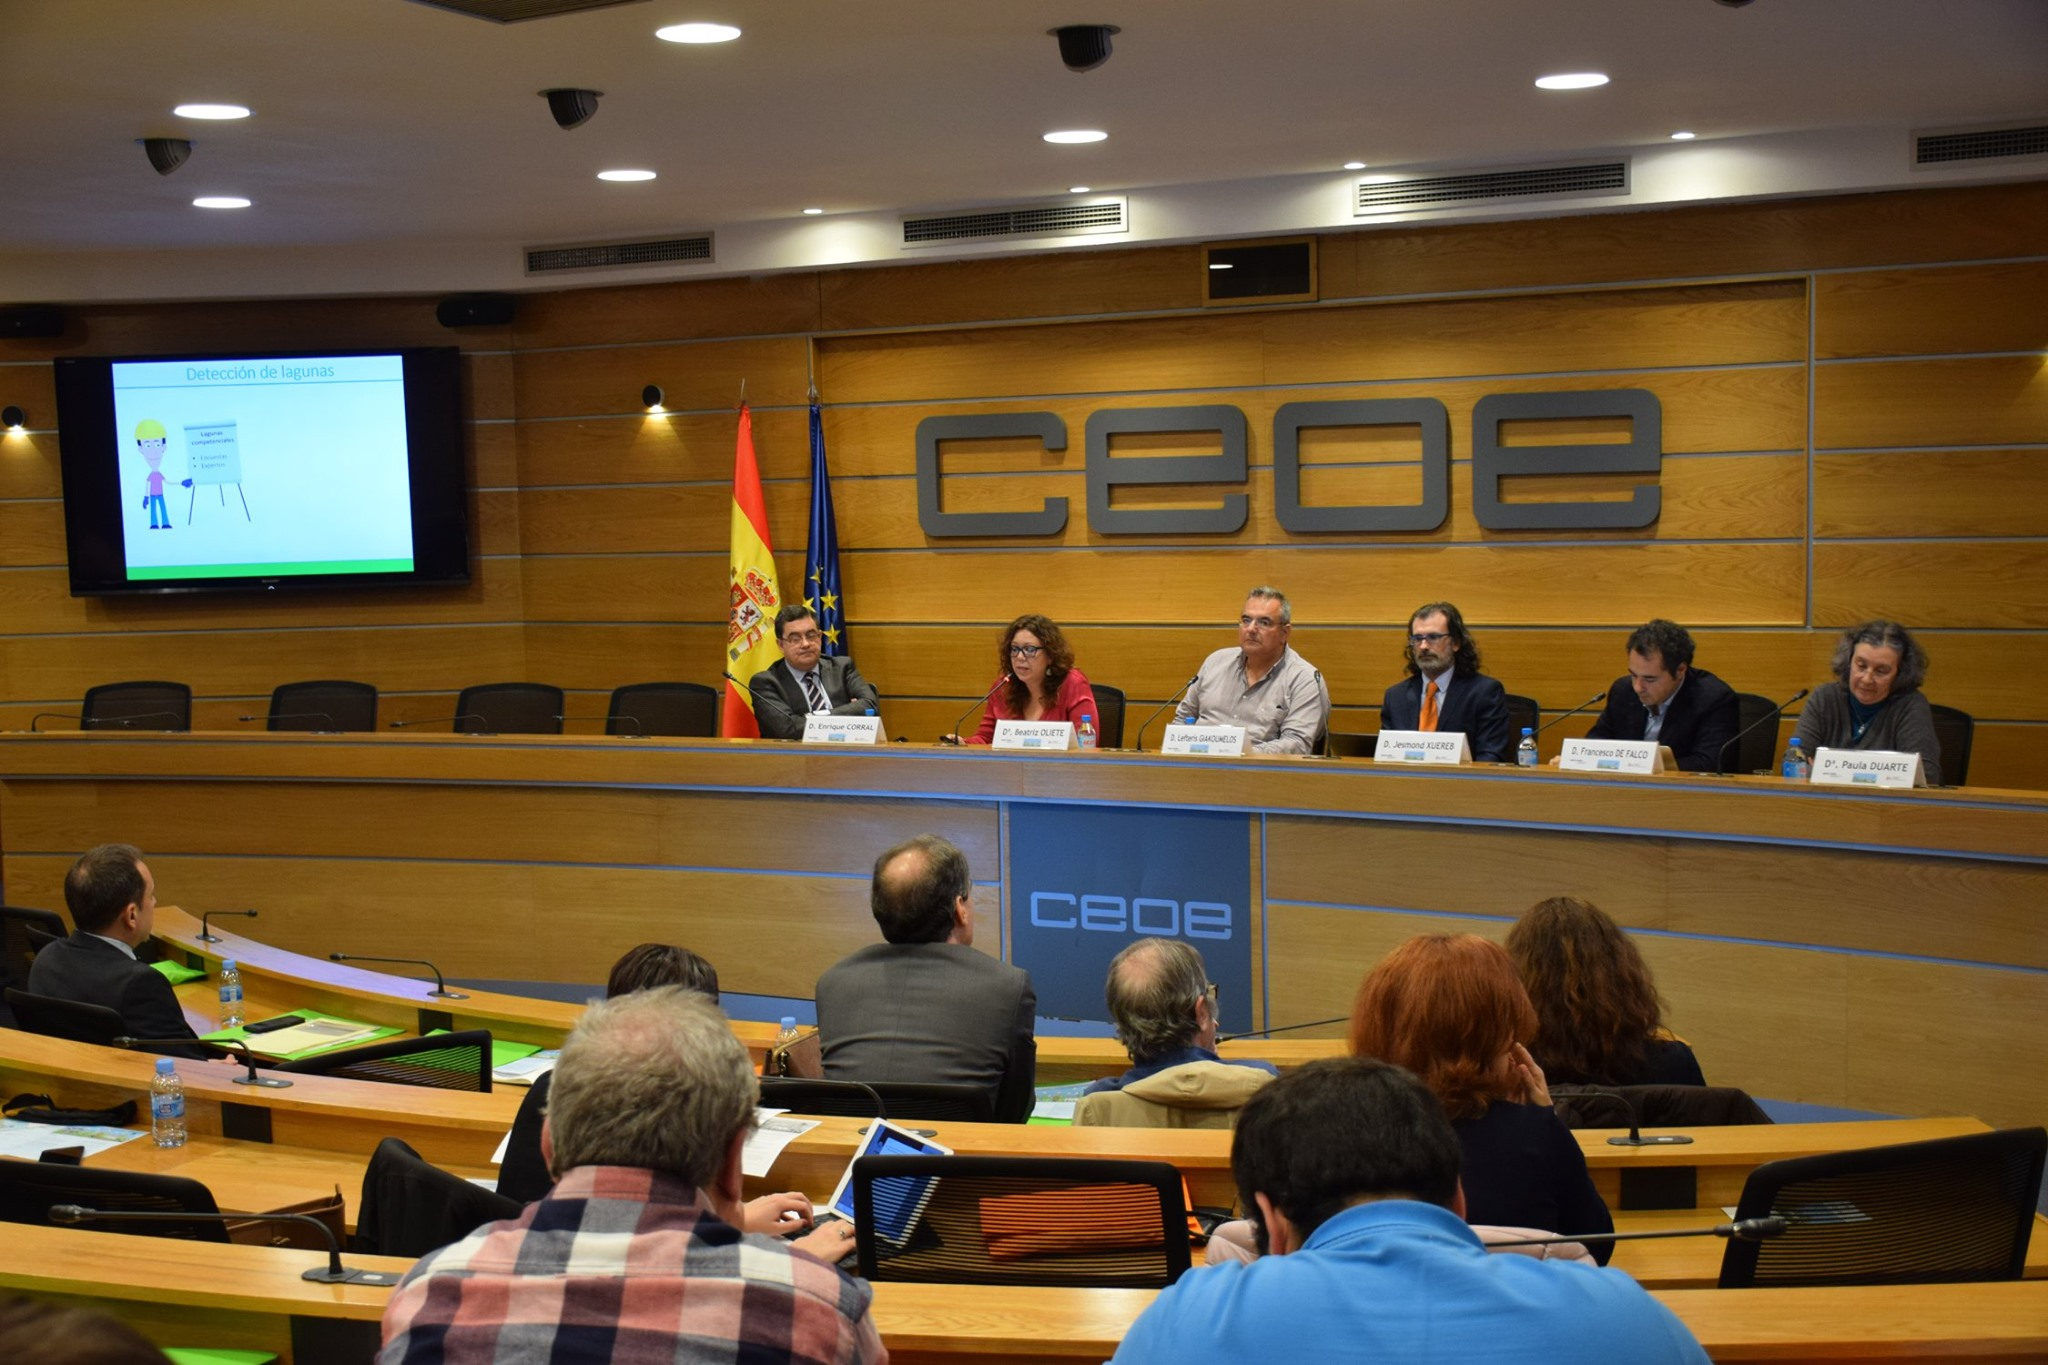 Final dissemination event for the BUS.TRAINERS project in Madrid